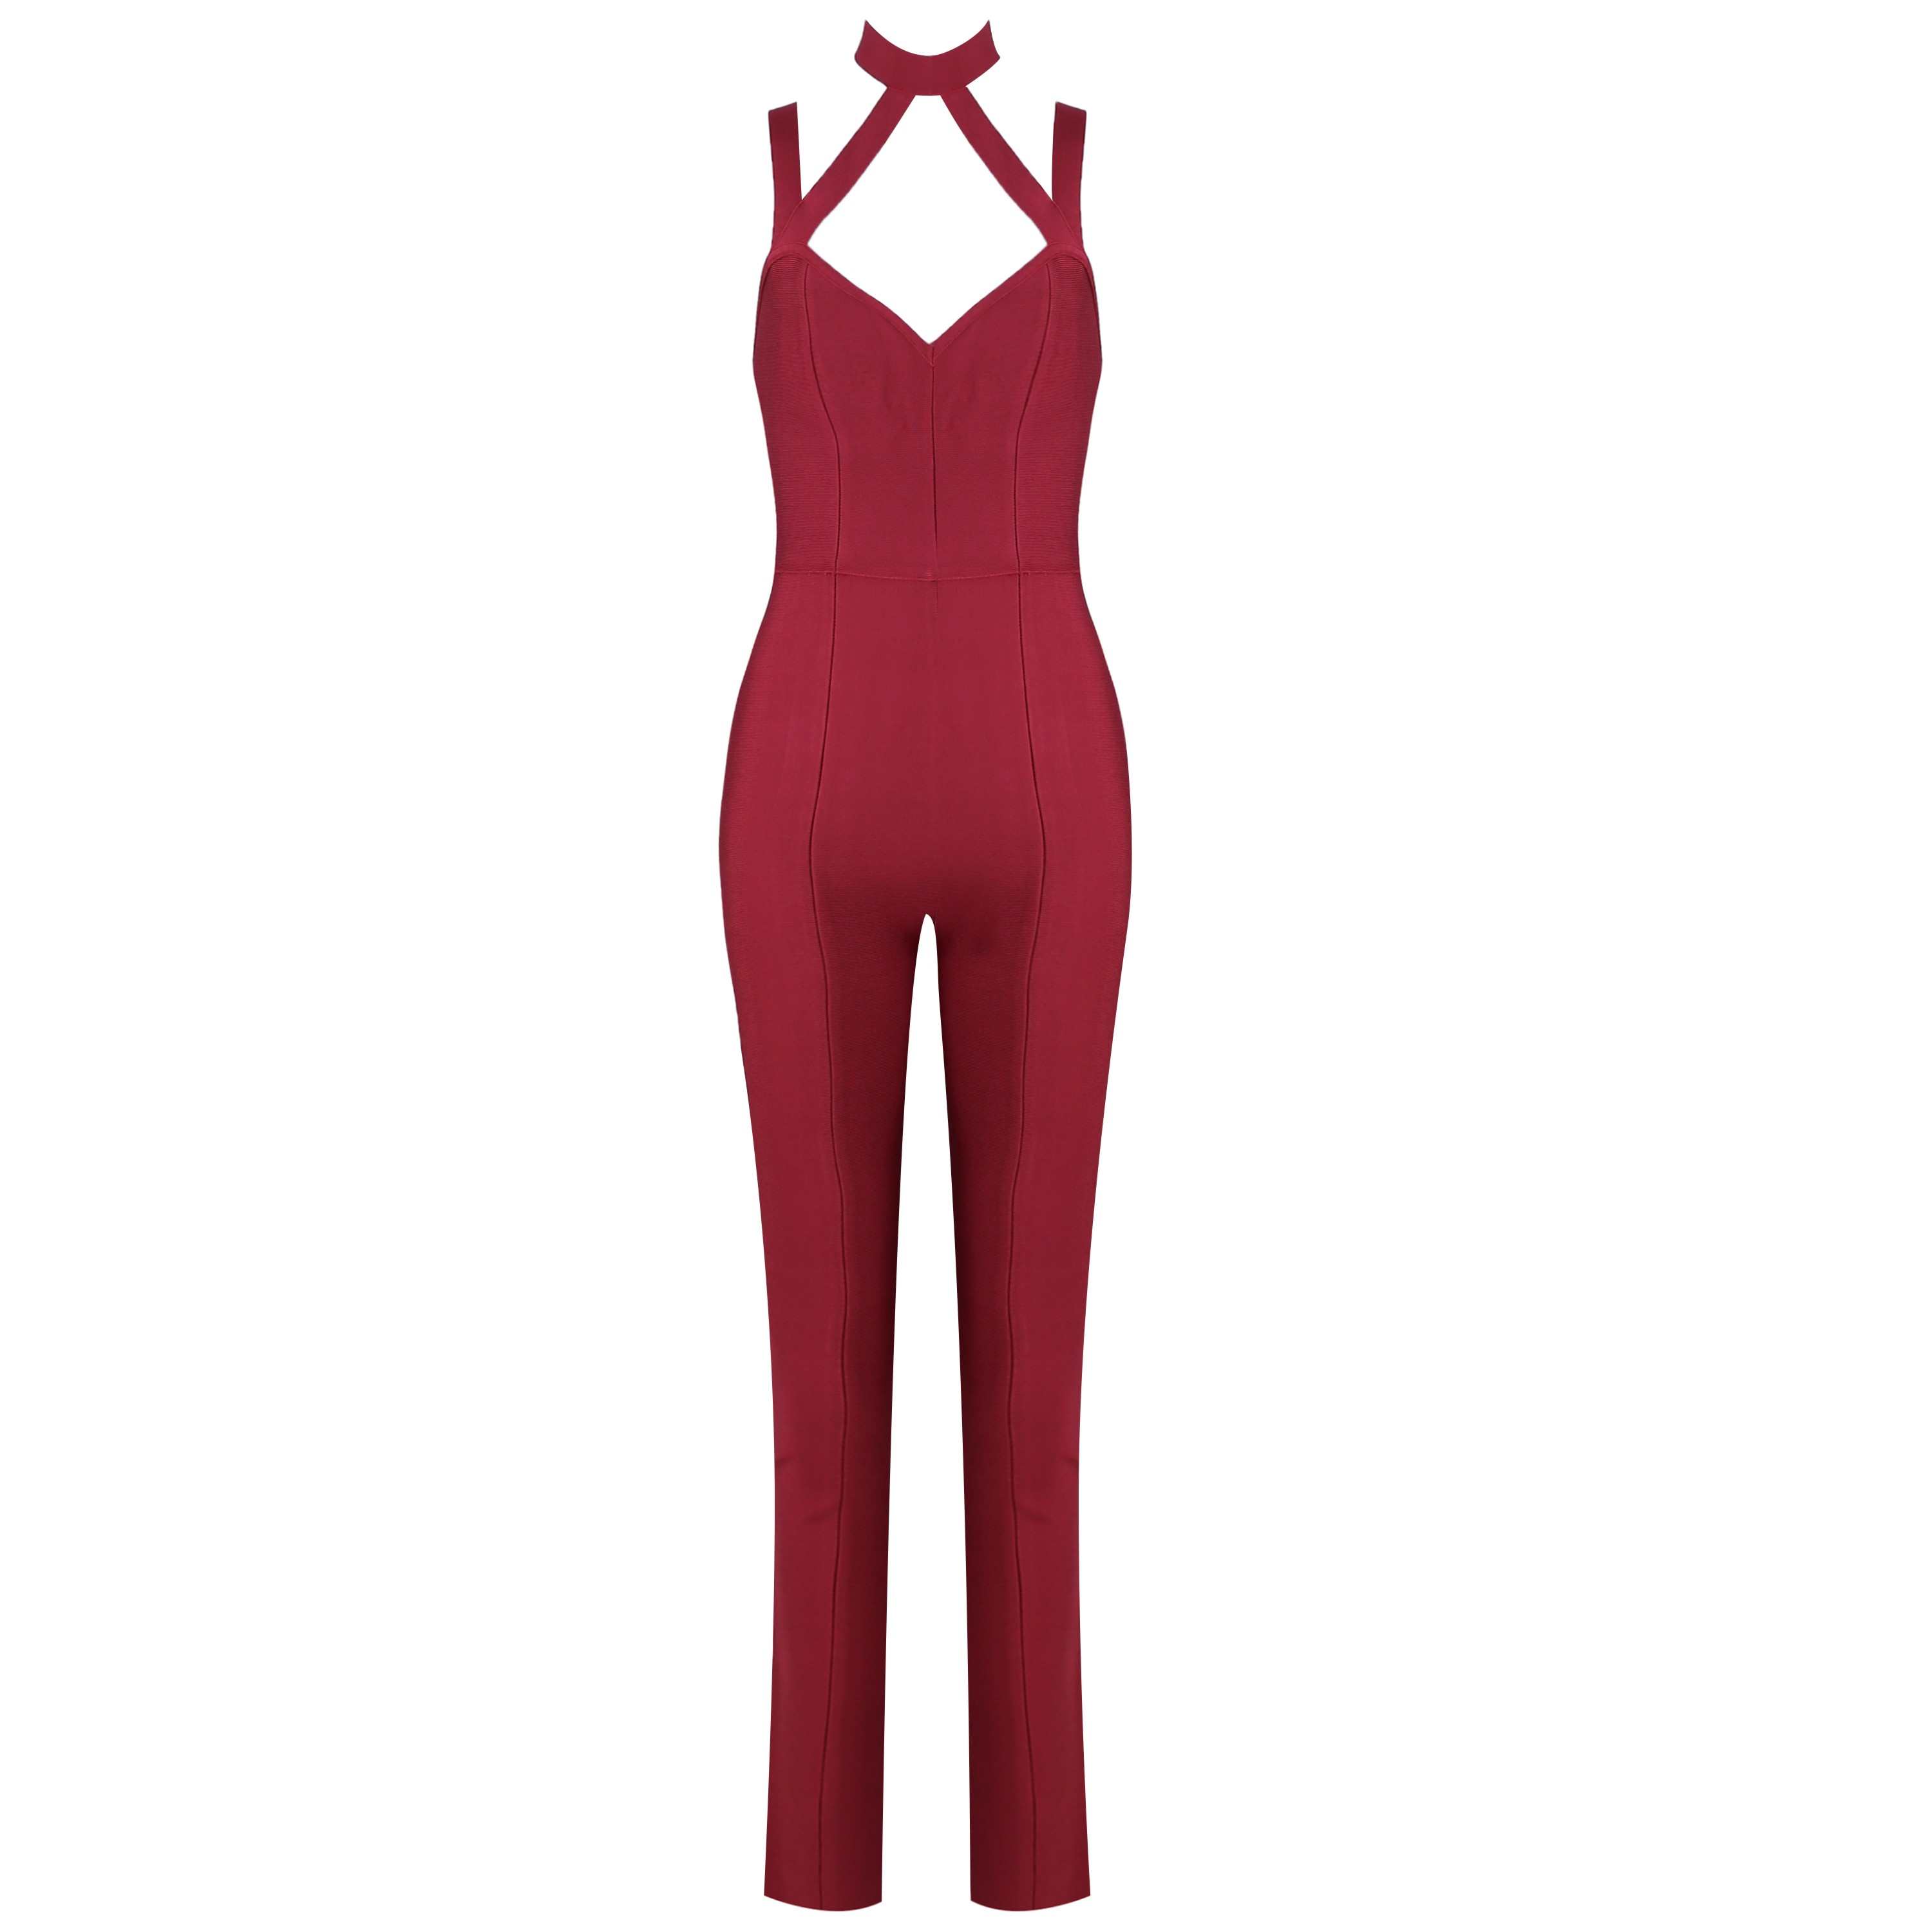 Red Strapy Sleeveless Over Knee Plain Backless High Quality Bandage Jumpsuits HK022-Red